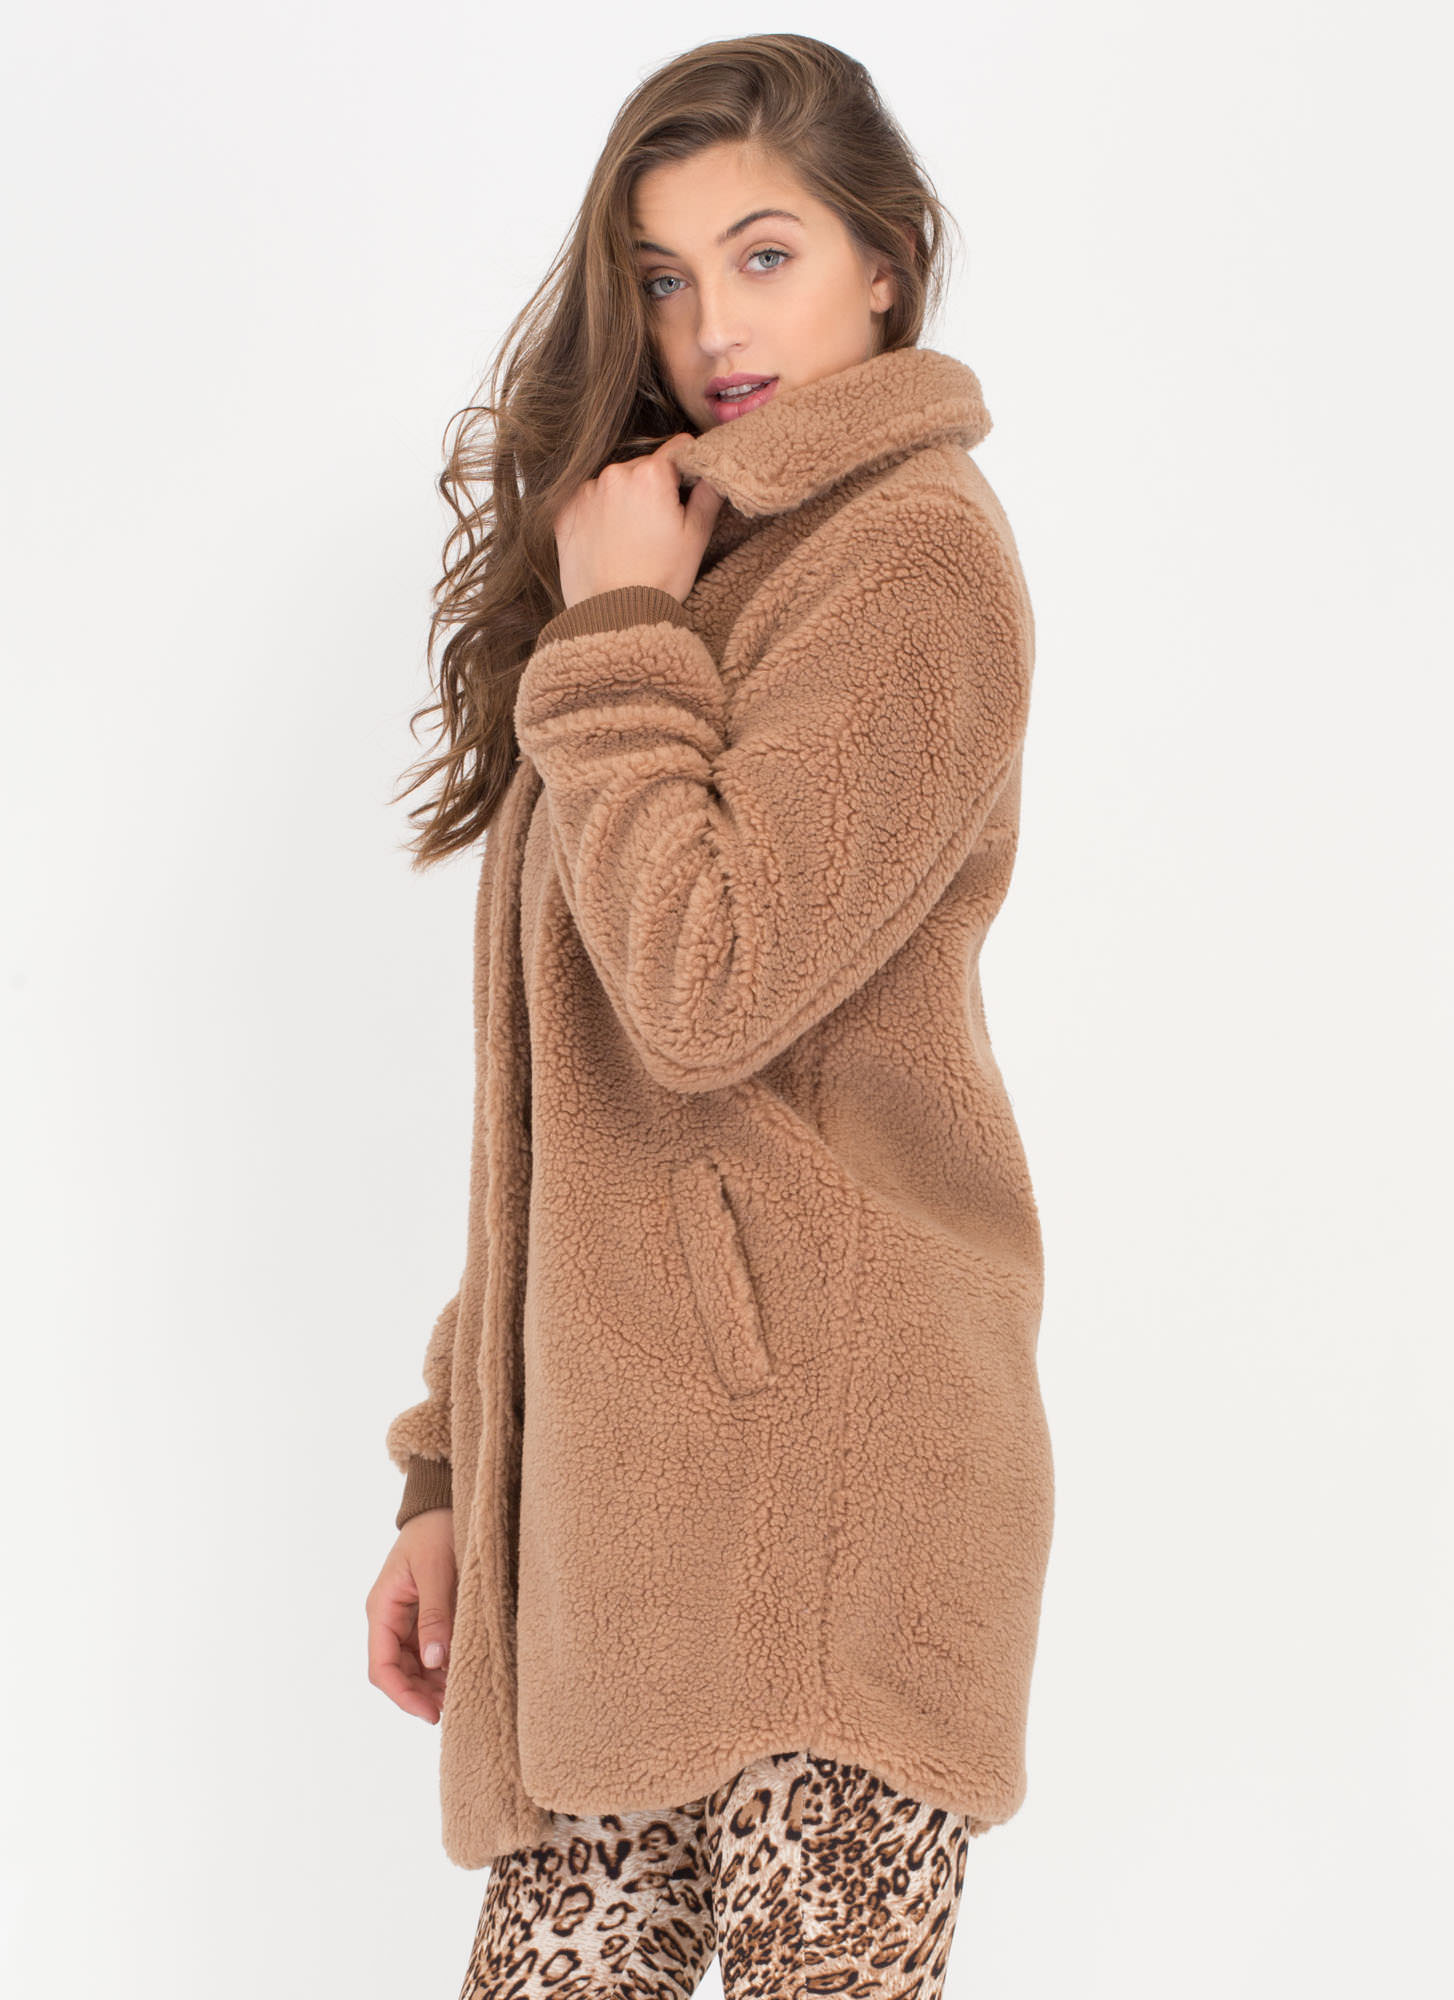 Teddy Bear Faux Shearling Coat BLUSH CAMEL - GoJane.com